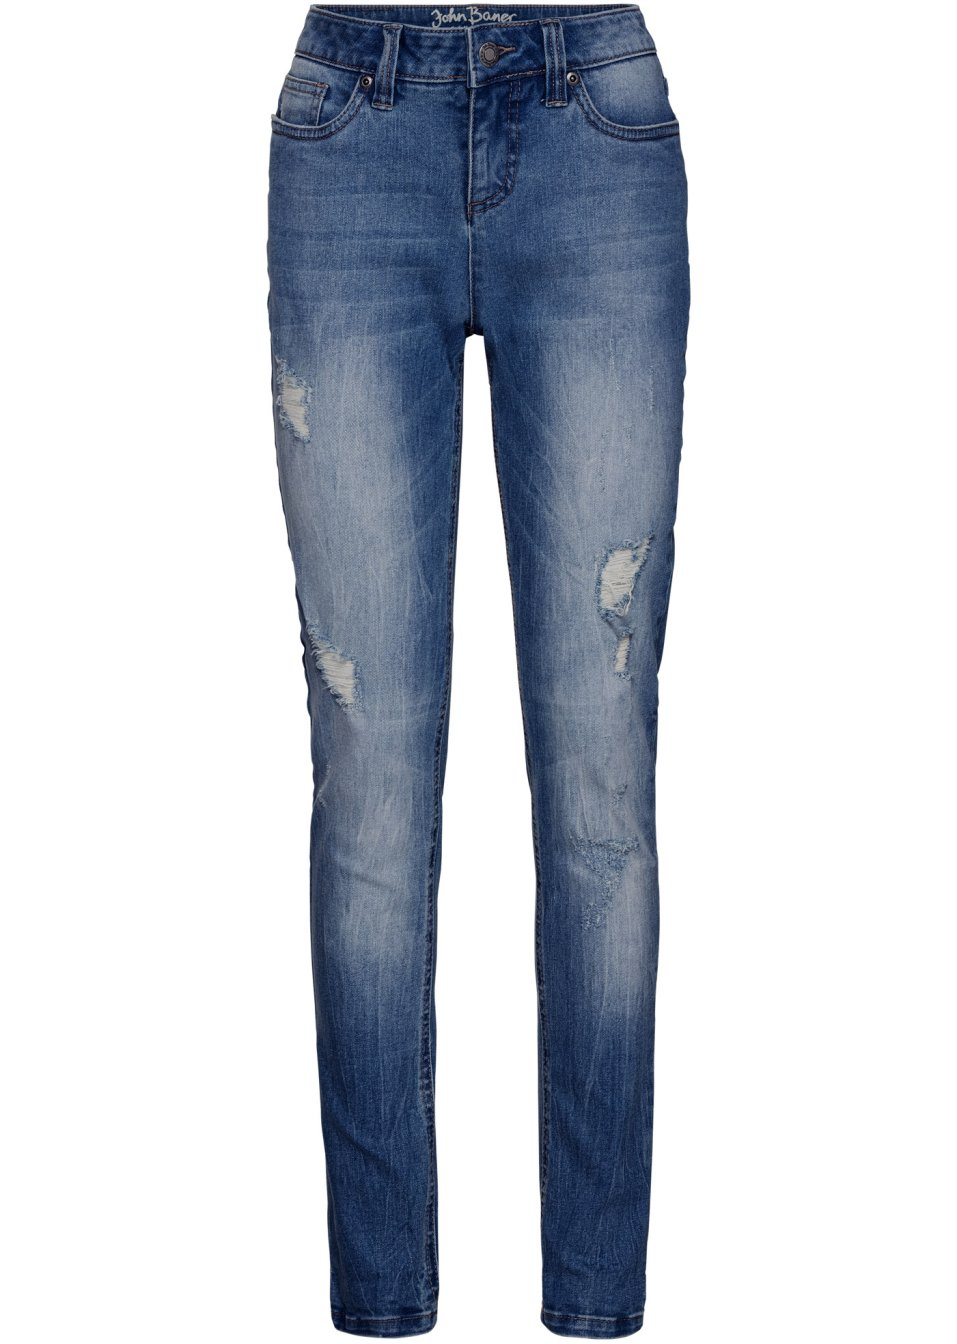 Lässige Basic-Jeans im Used-Look - mittelblau Normal cOb34 91tmO